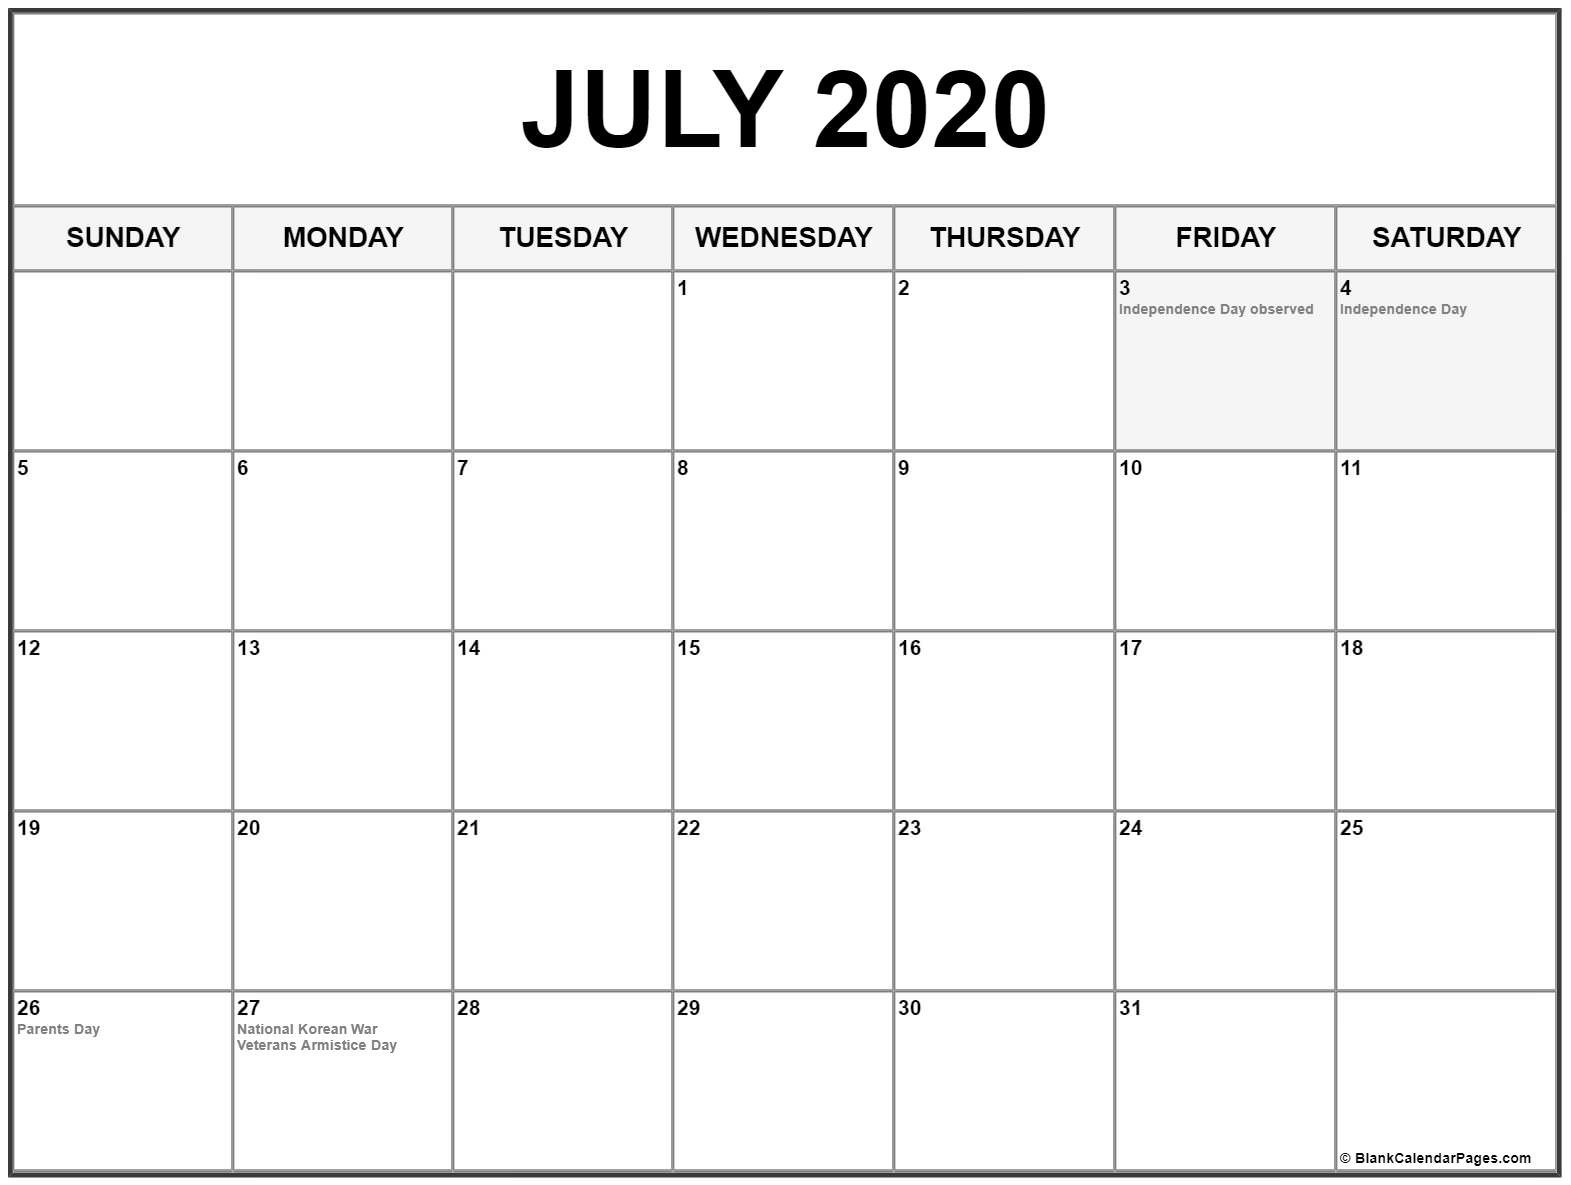 Collection Of July 2020 Calendars With Holidays 2020 Calendar Us